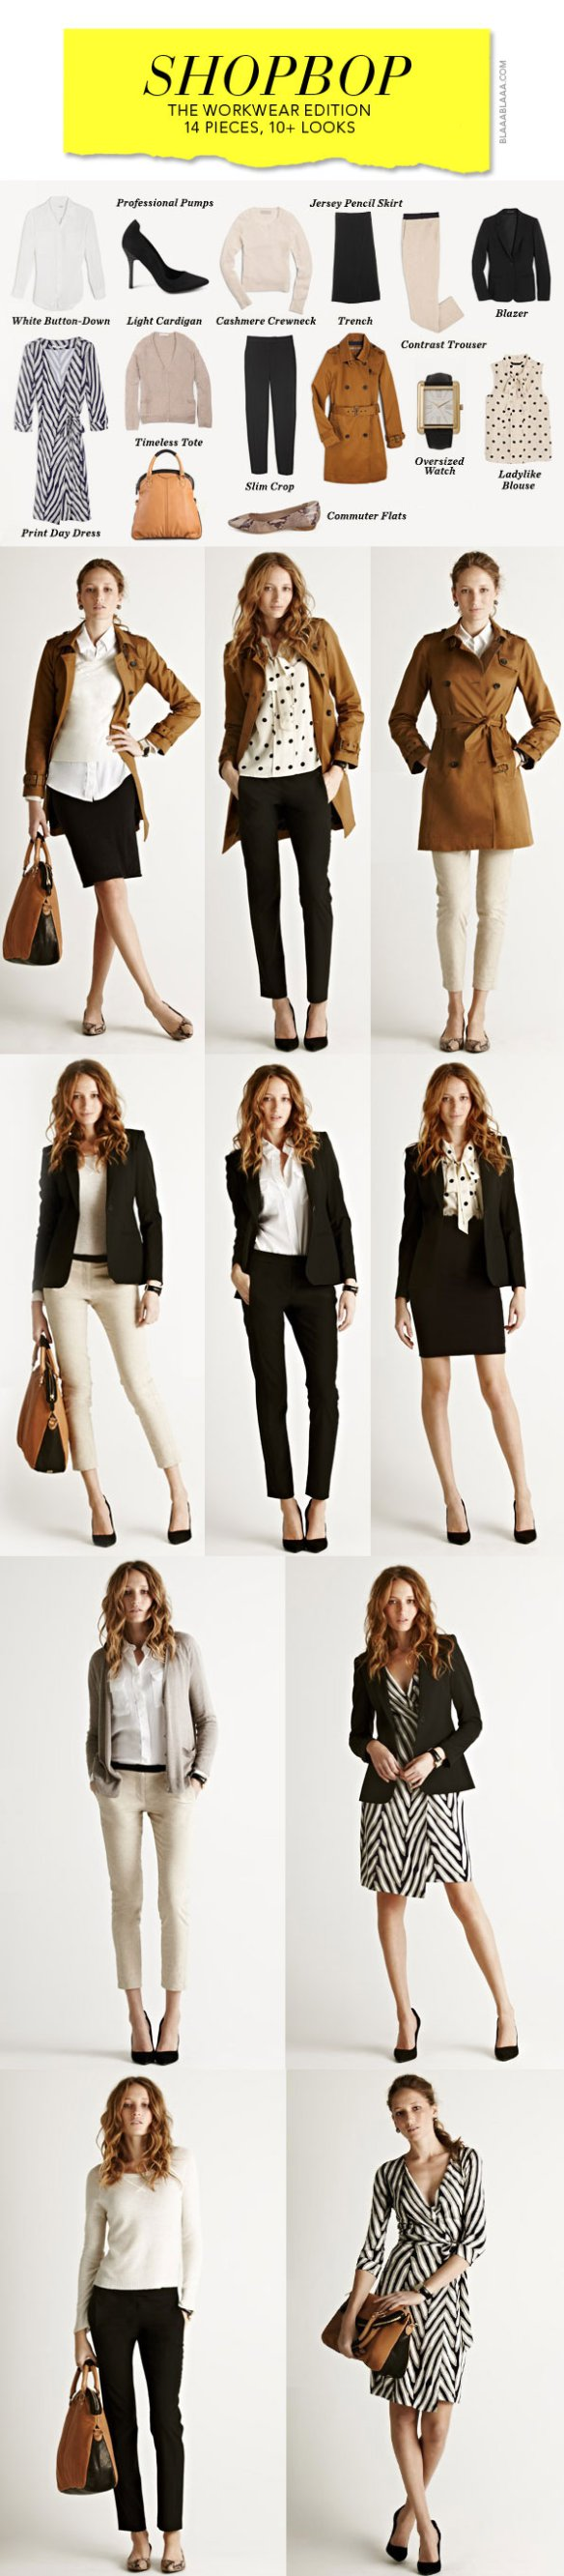 """the ultimate wardrobe, workwear edition"" via shopbop.com"